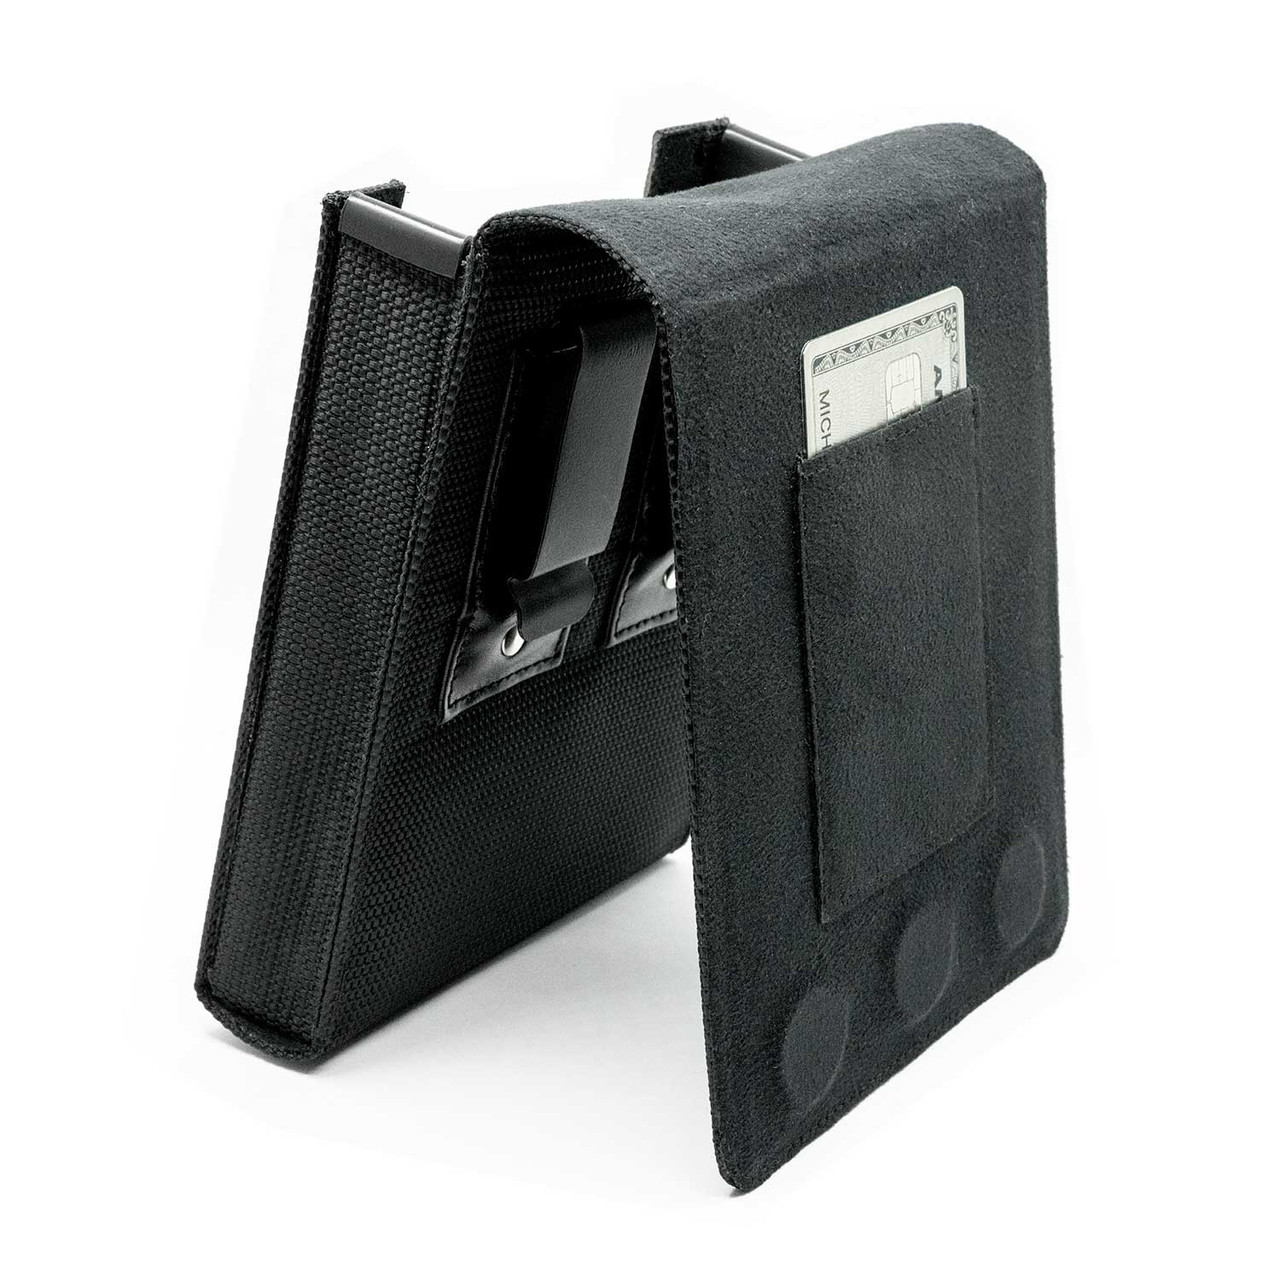 Walther PPK/S Holster